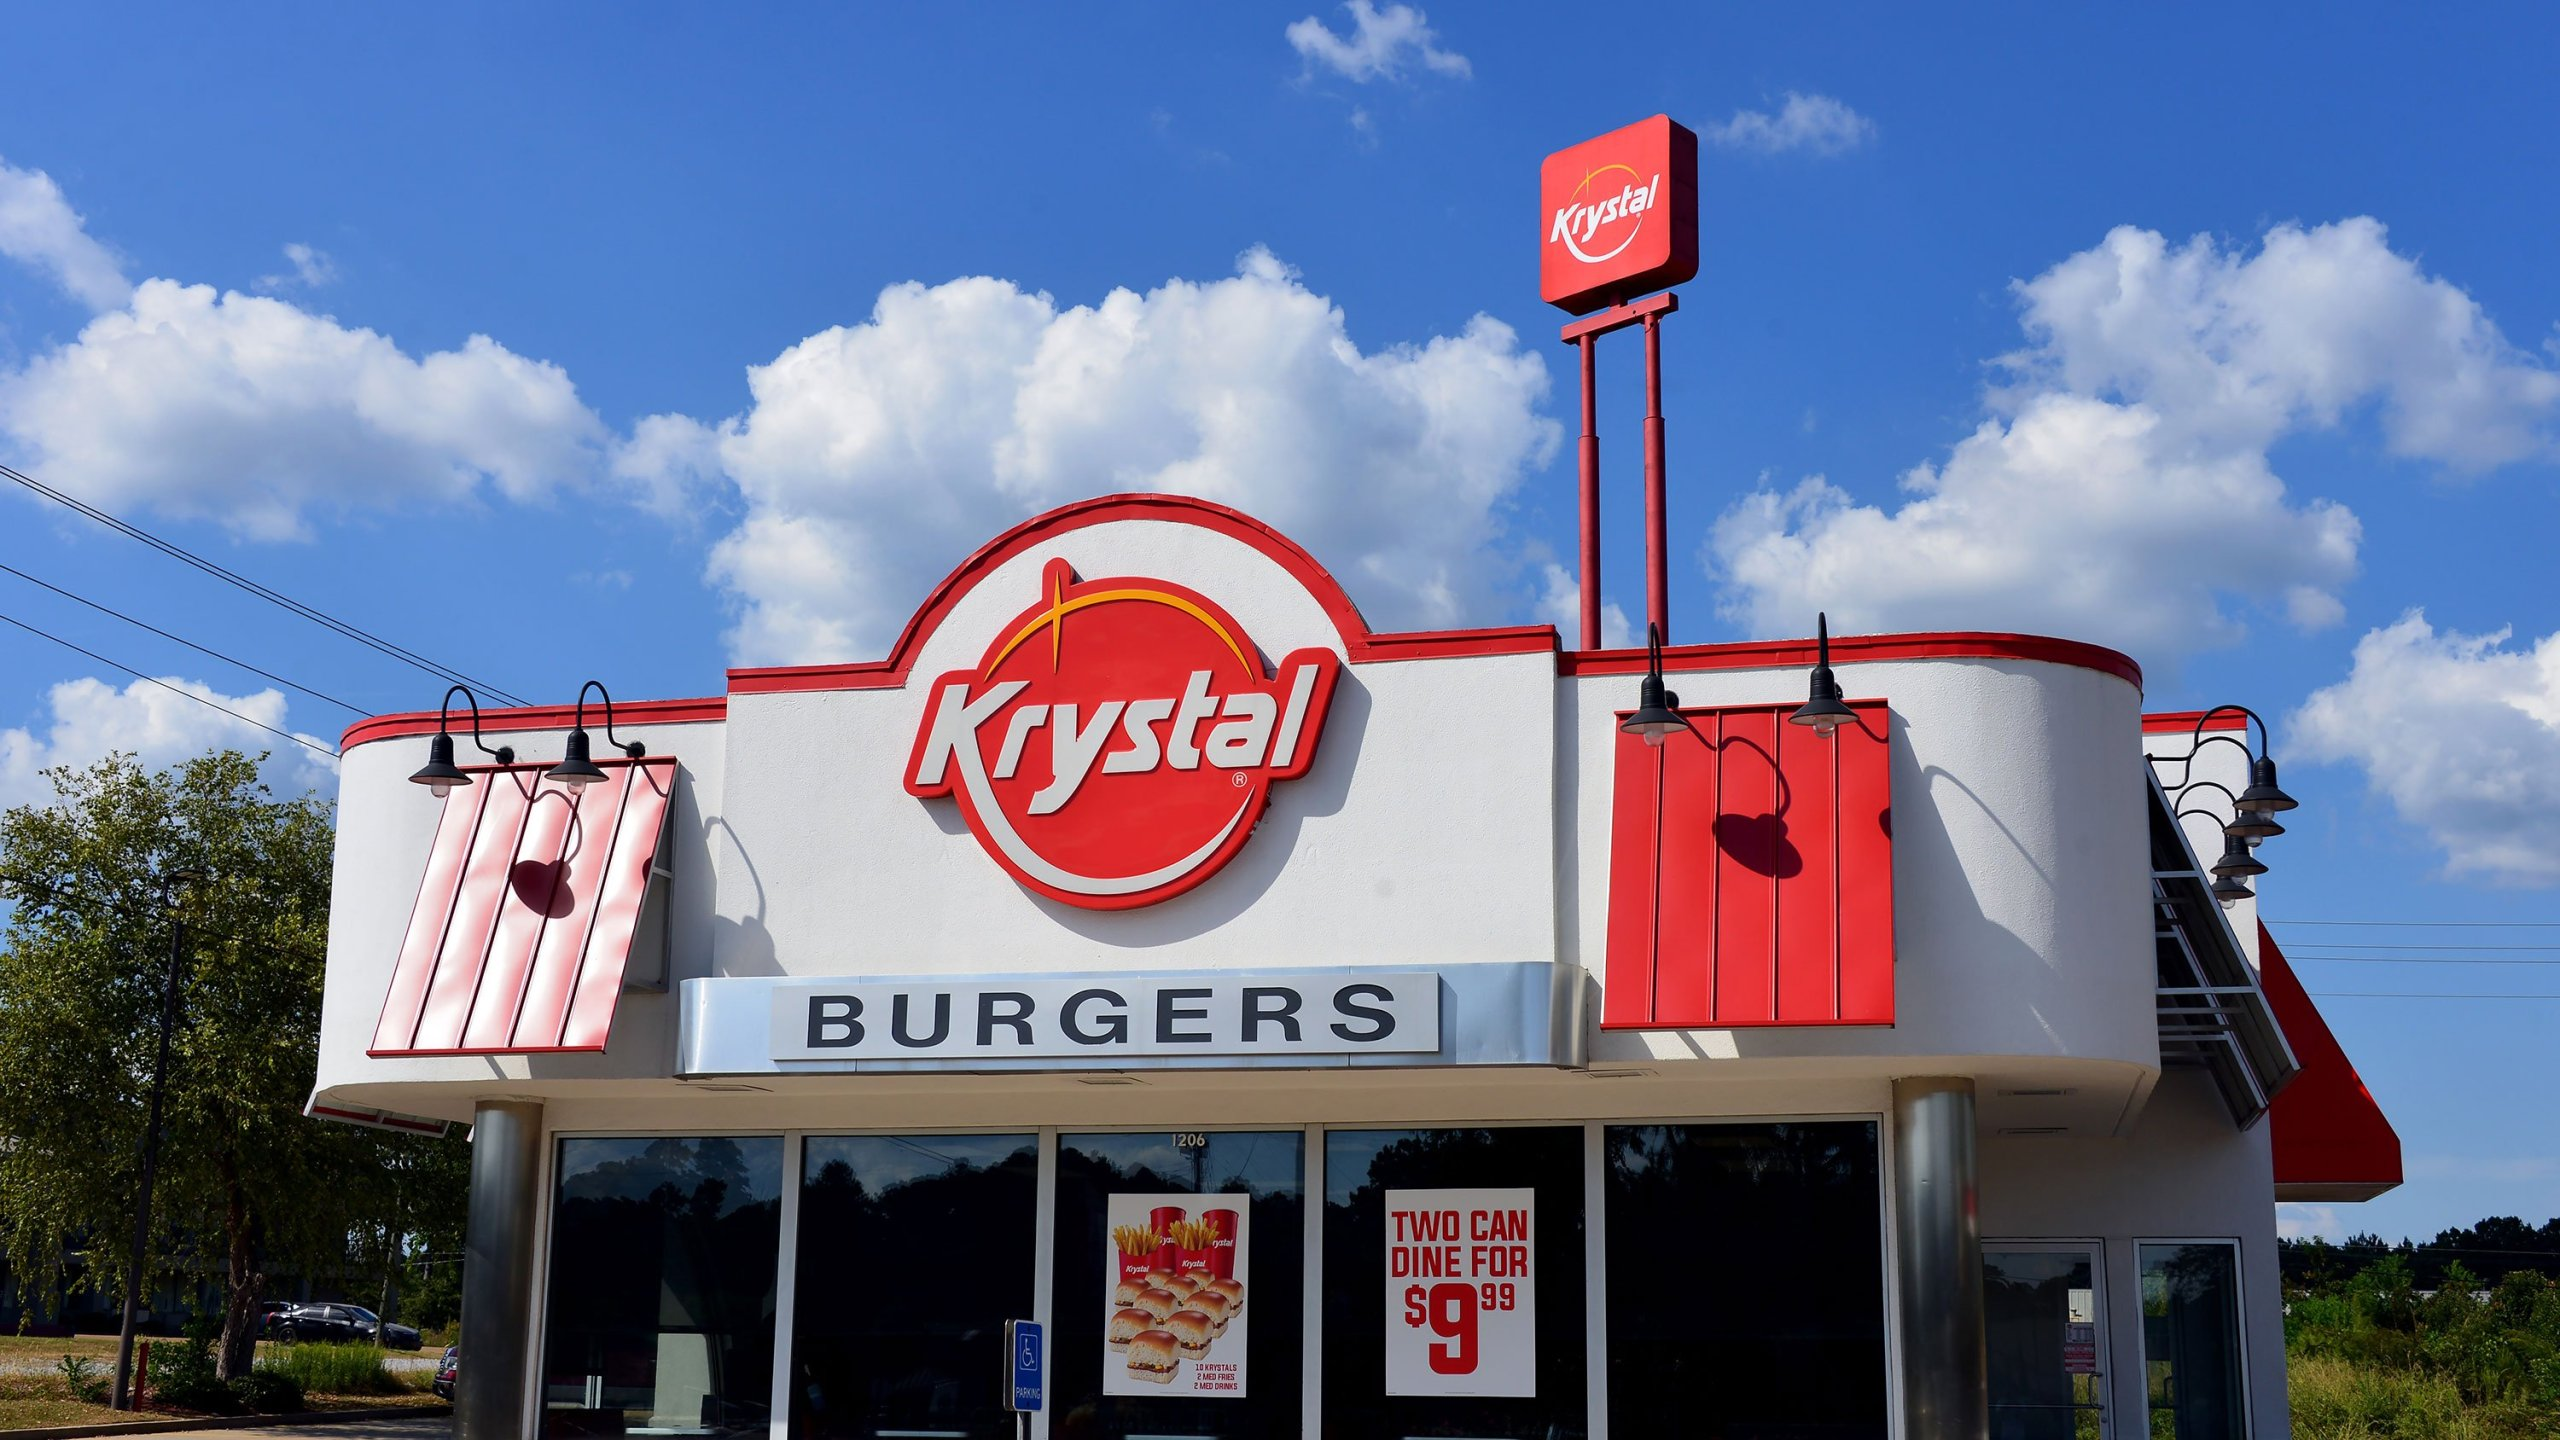 Fast food chain Krystal files for bankruptcy | FOX 2